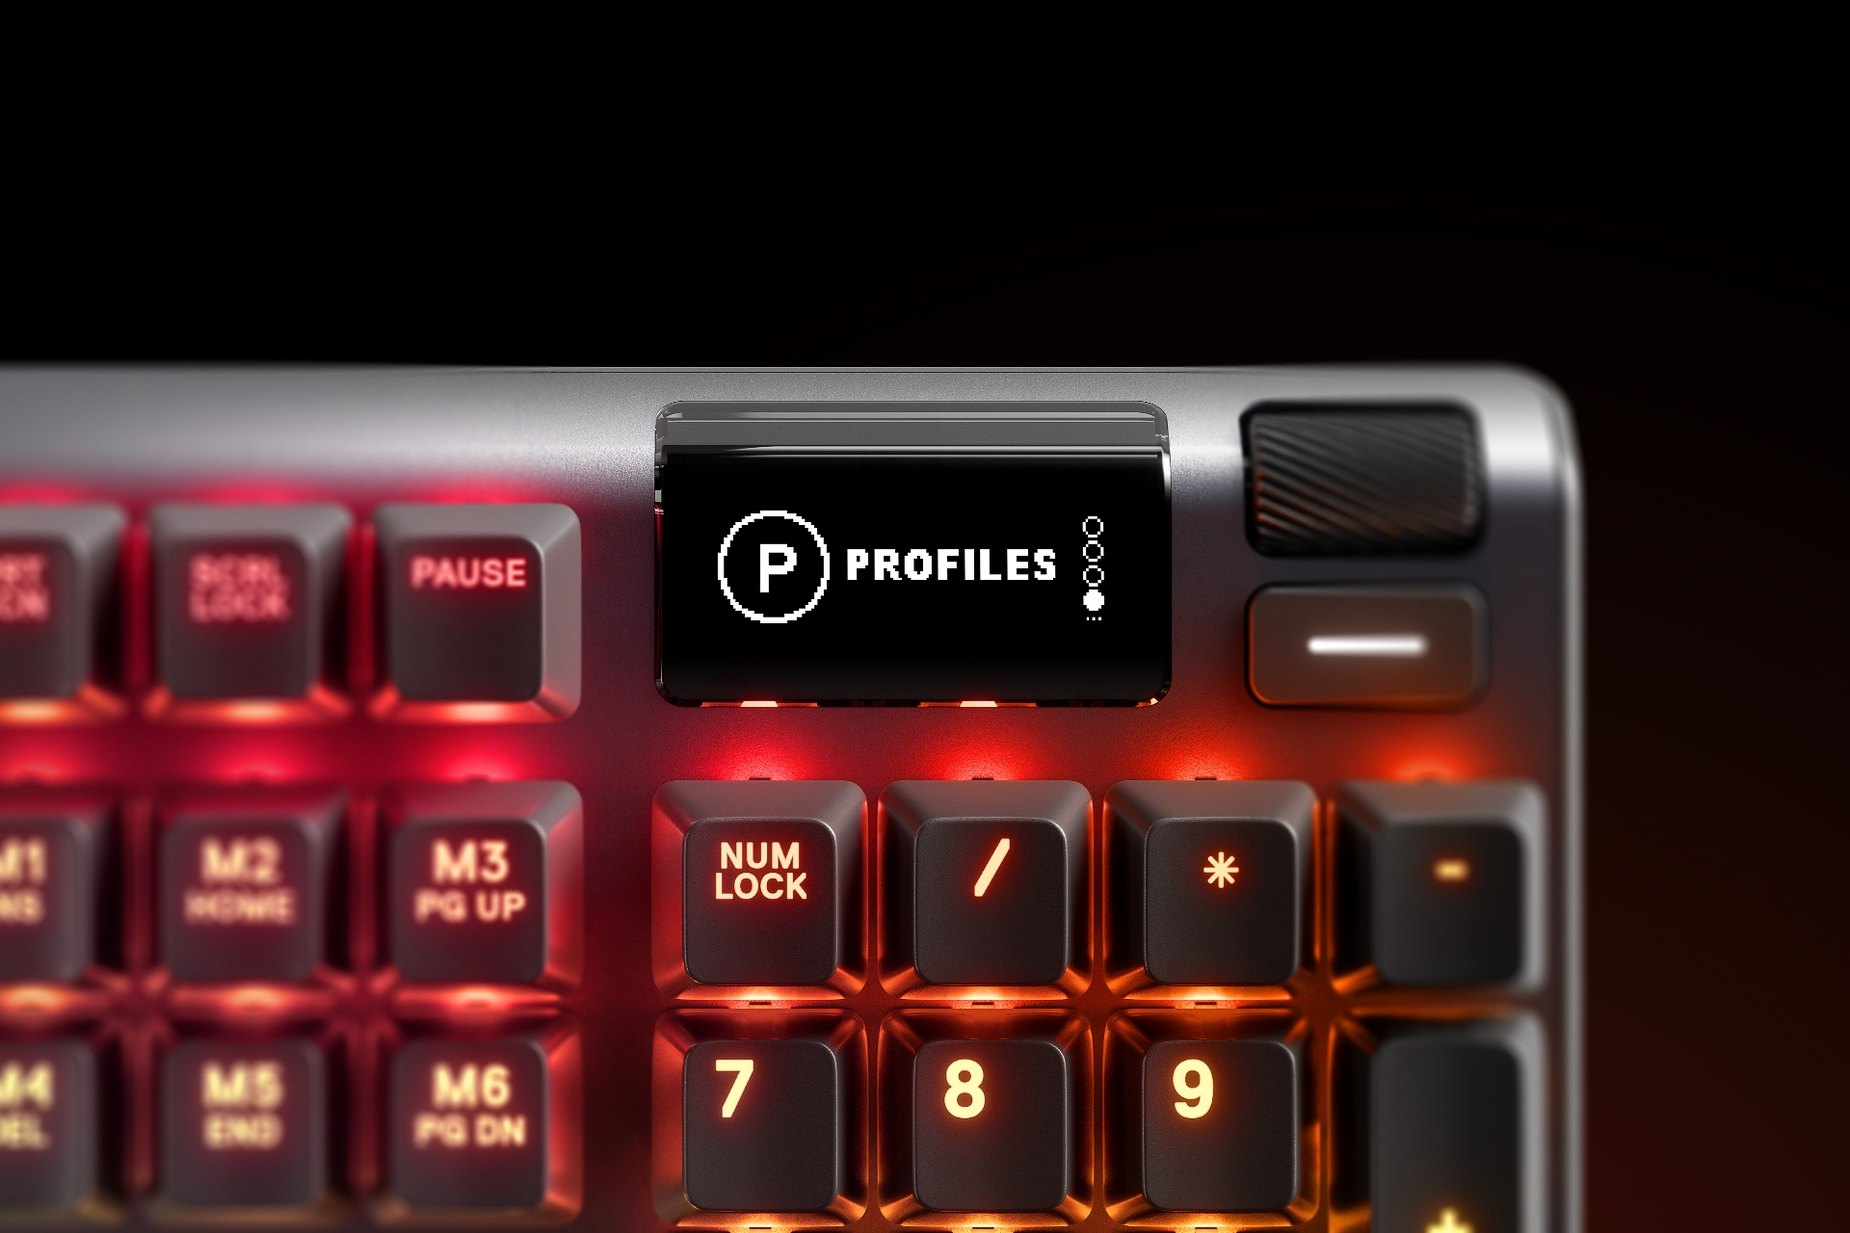 Zoomed in view of the multimedia and settings controls/volume roller on the Korean-Apex 7 (Red Switch) gaming keyboard